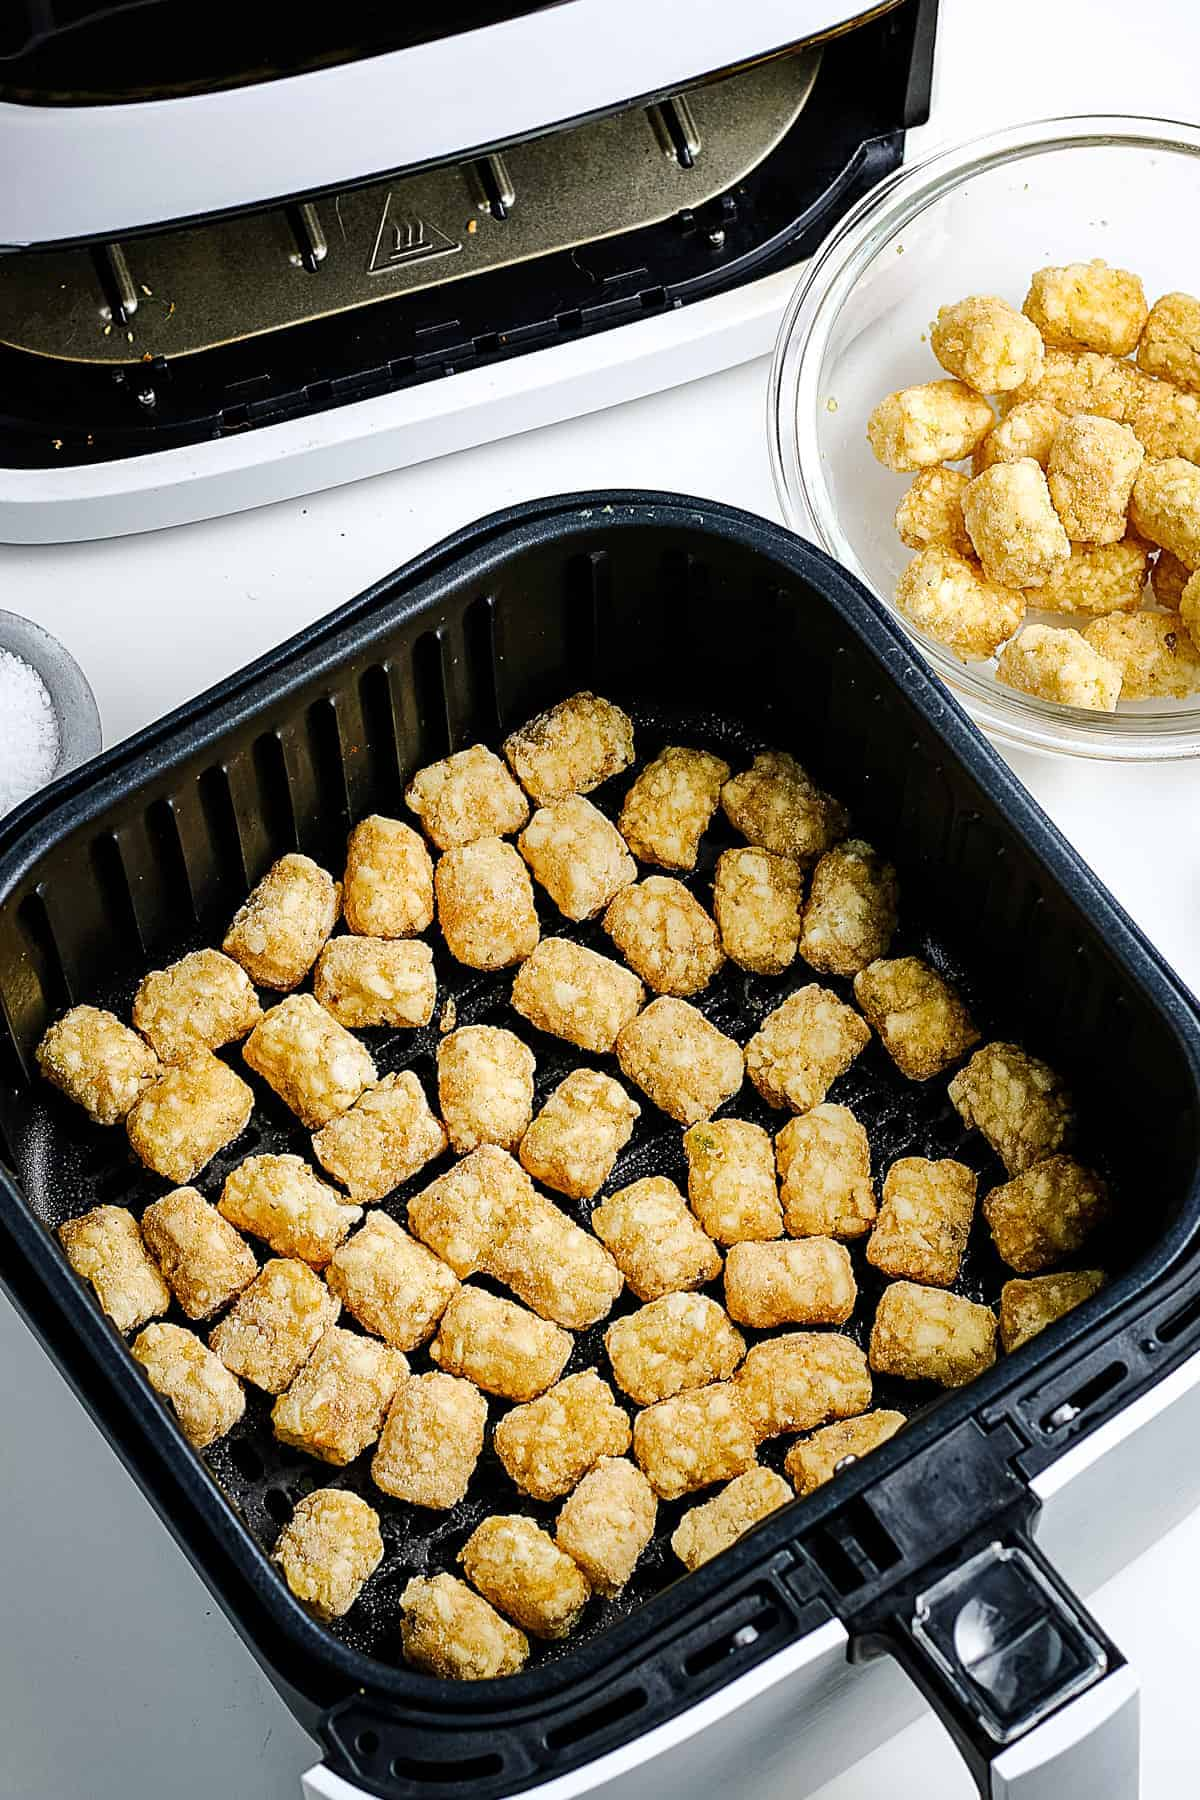 Raw Tater Tots in air fryer basket